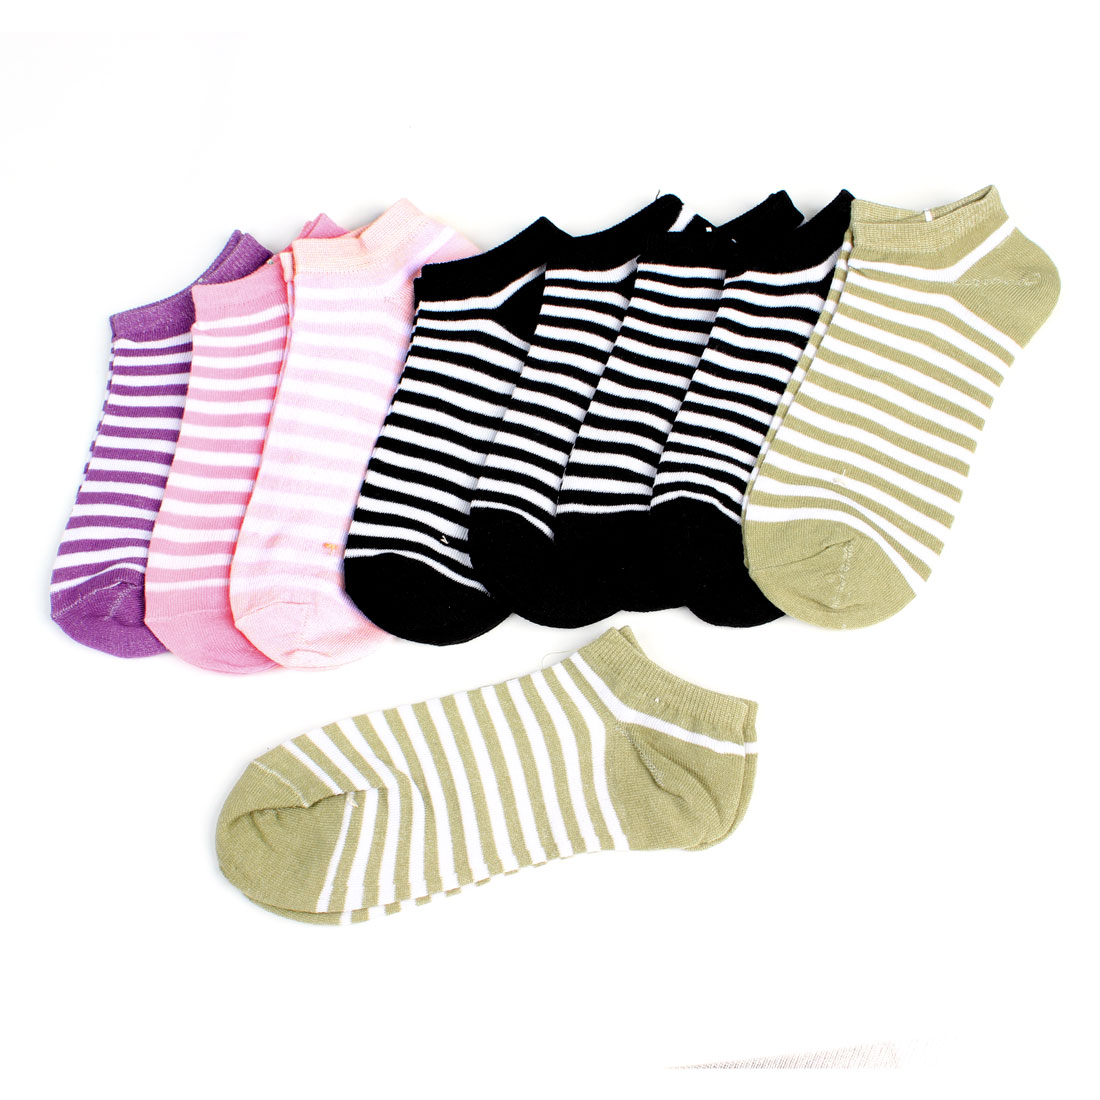 Woman Lady Assorted Color Short Low Cut Sport Socks 9 Pairs